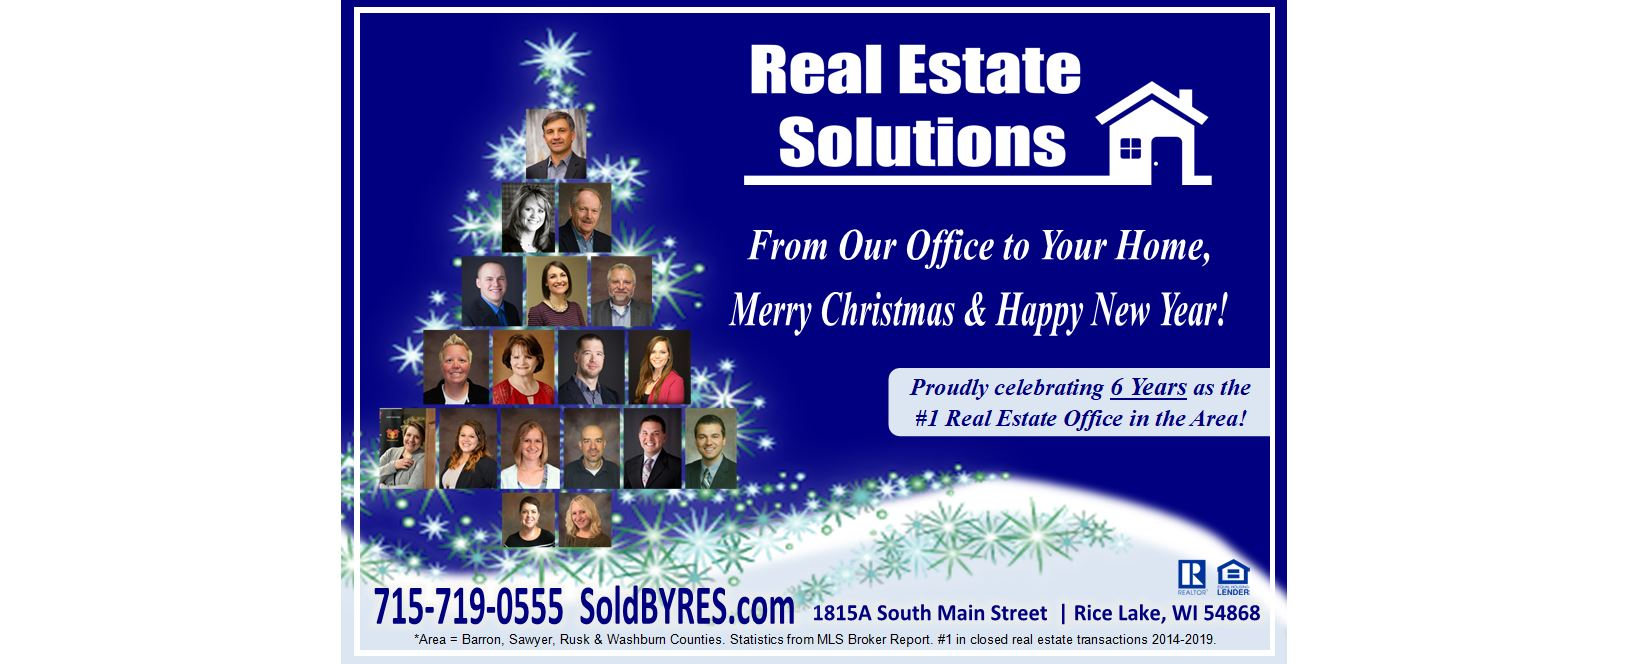 Merry Christmas and Happy New Year from Real Estate Solutions!